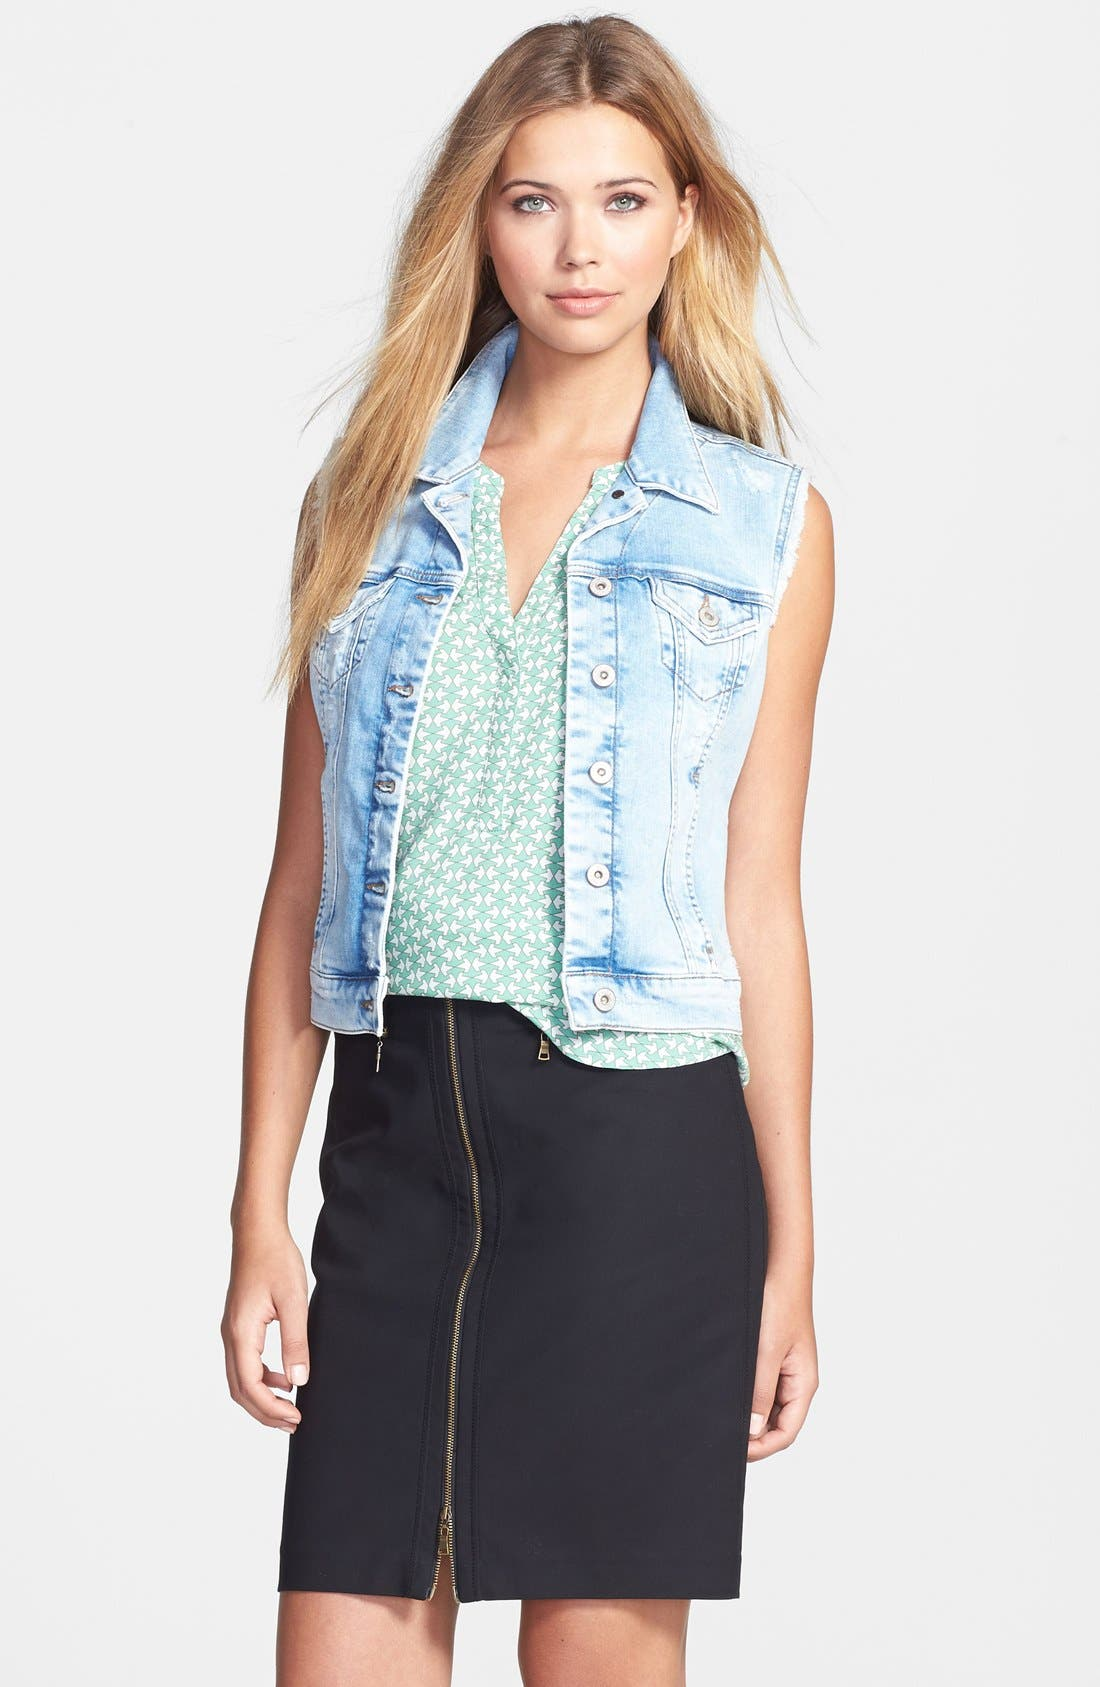 MAVI JEANS 'Jodi' Fitted Denim Vest, Main, color, 404